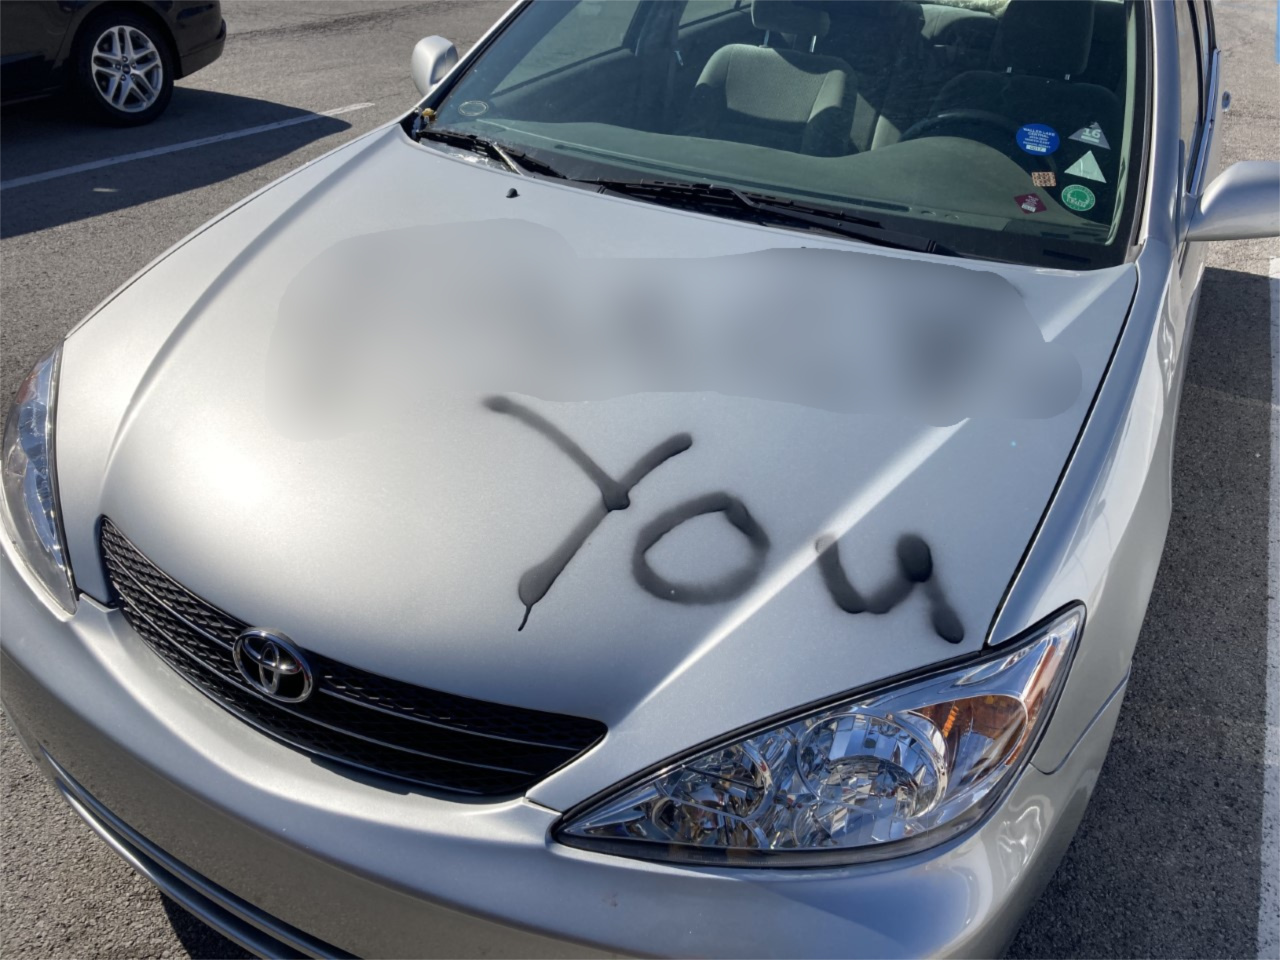 """F--- you"" is written across the hood of a car."